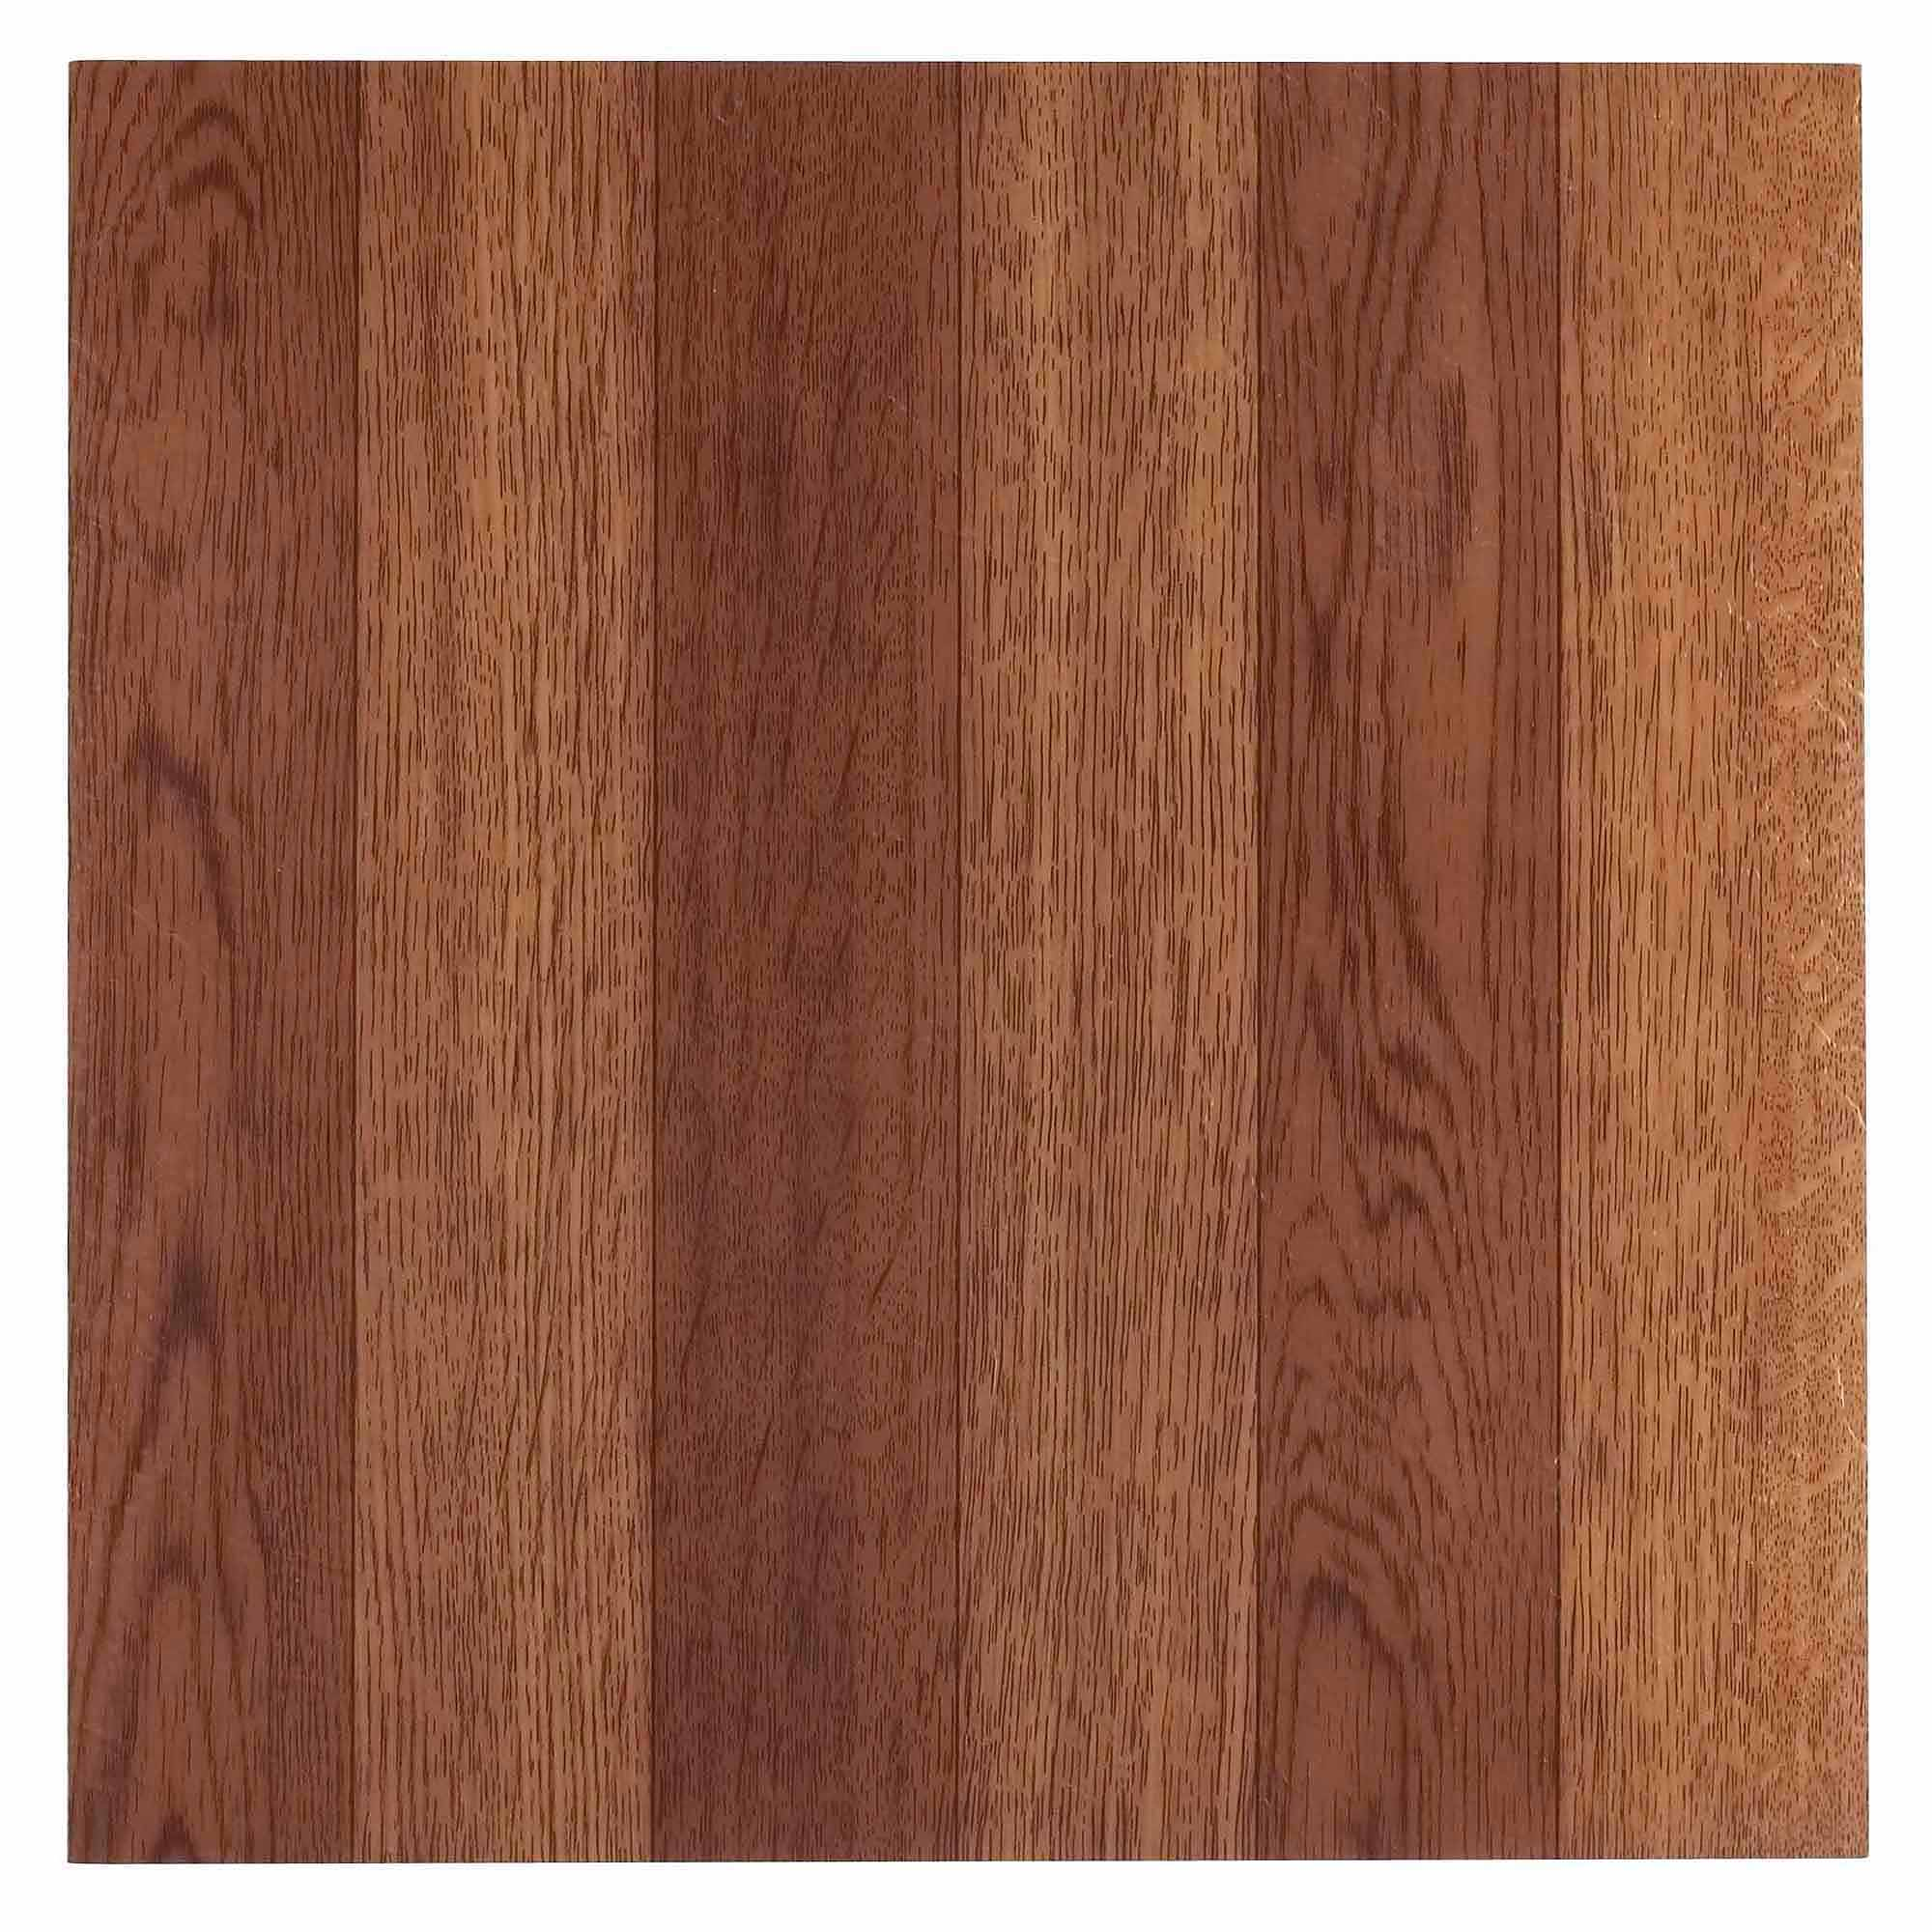 Nexus medium oak plank look 12x12 self adhesive vinyl floor tile nexus medium oak plank look 12x12 self adhesive vinyl floor tile 20 tiles20 sqft walmart dailygadgetfo Images